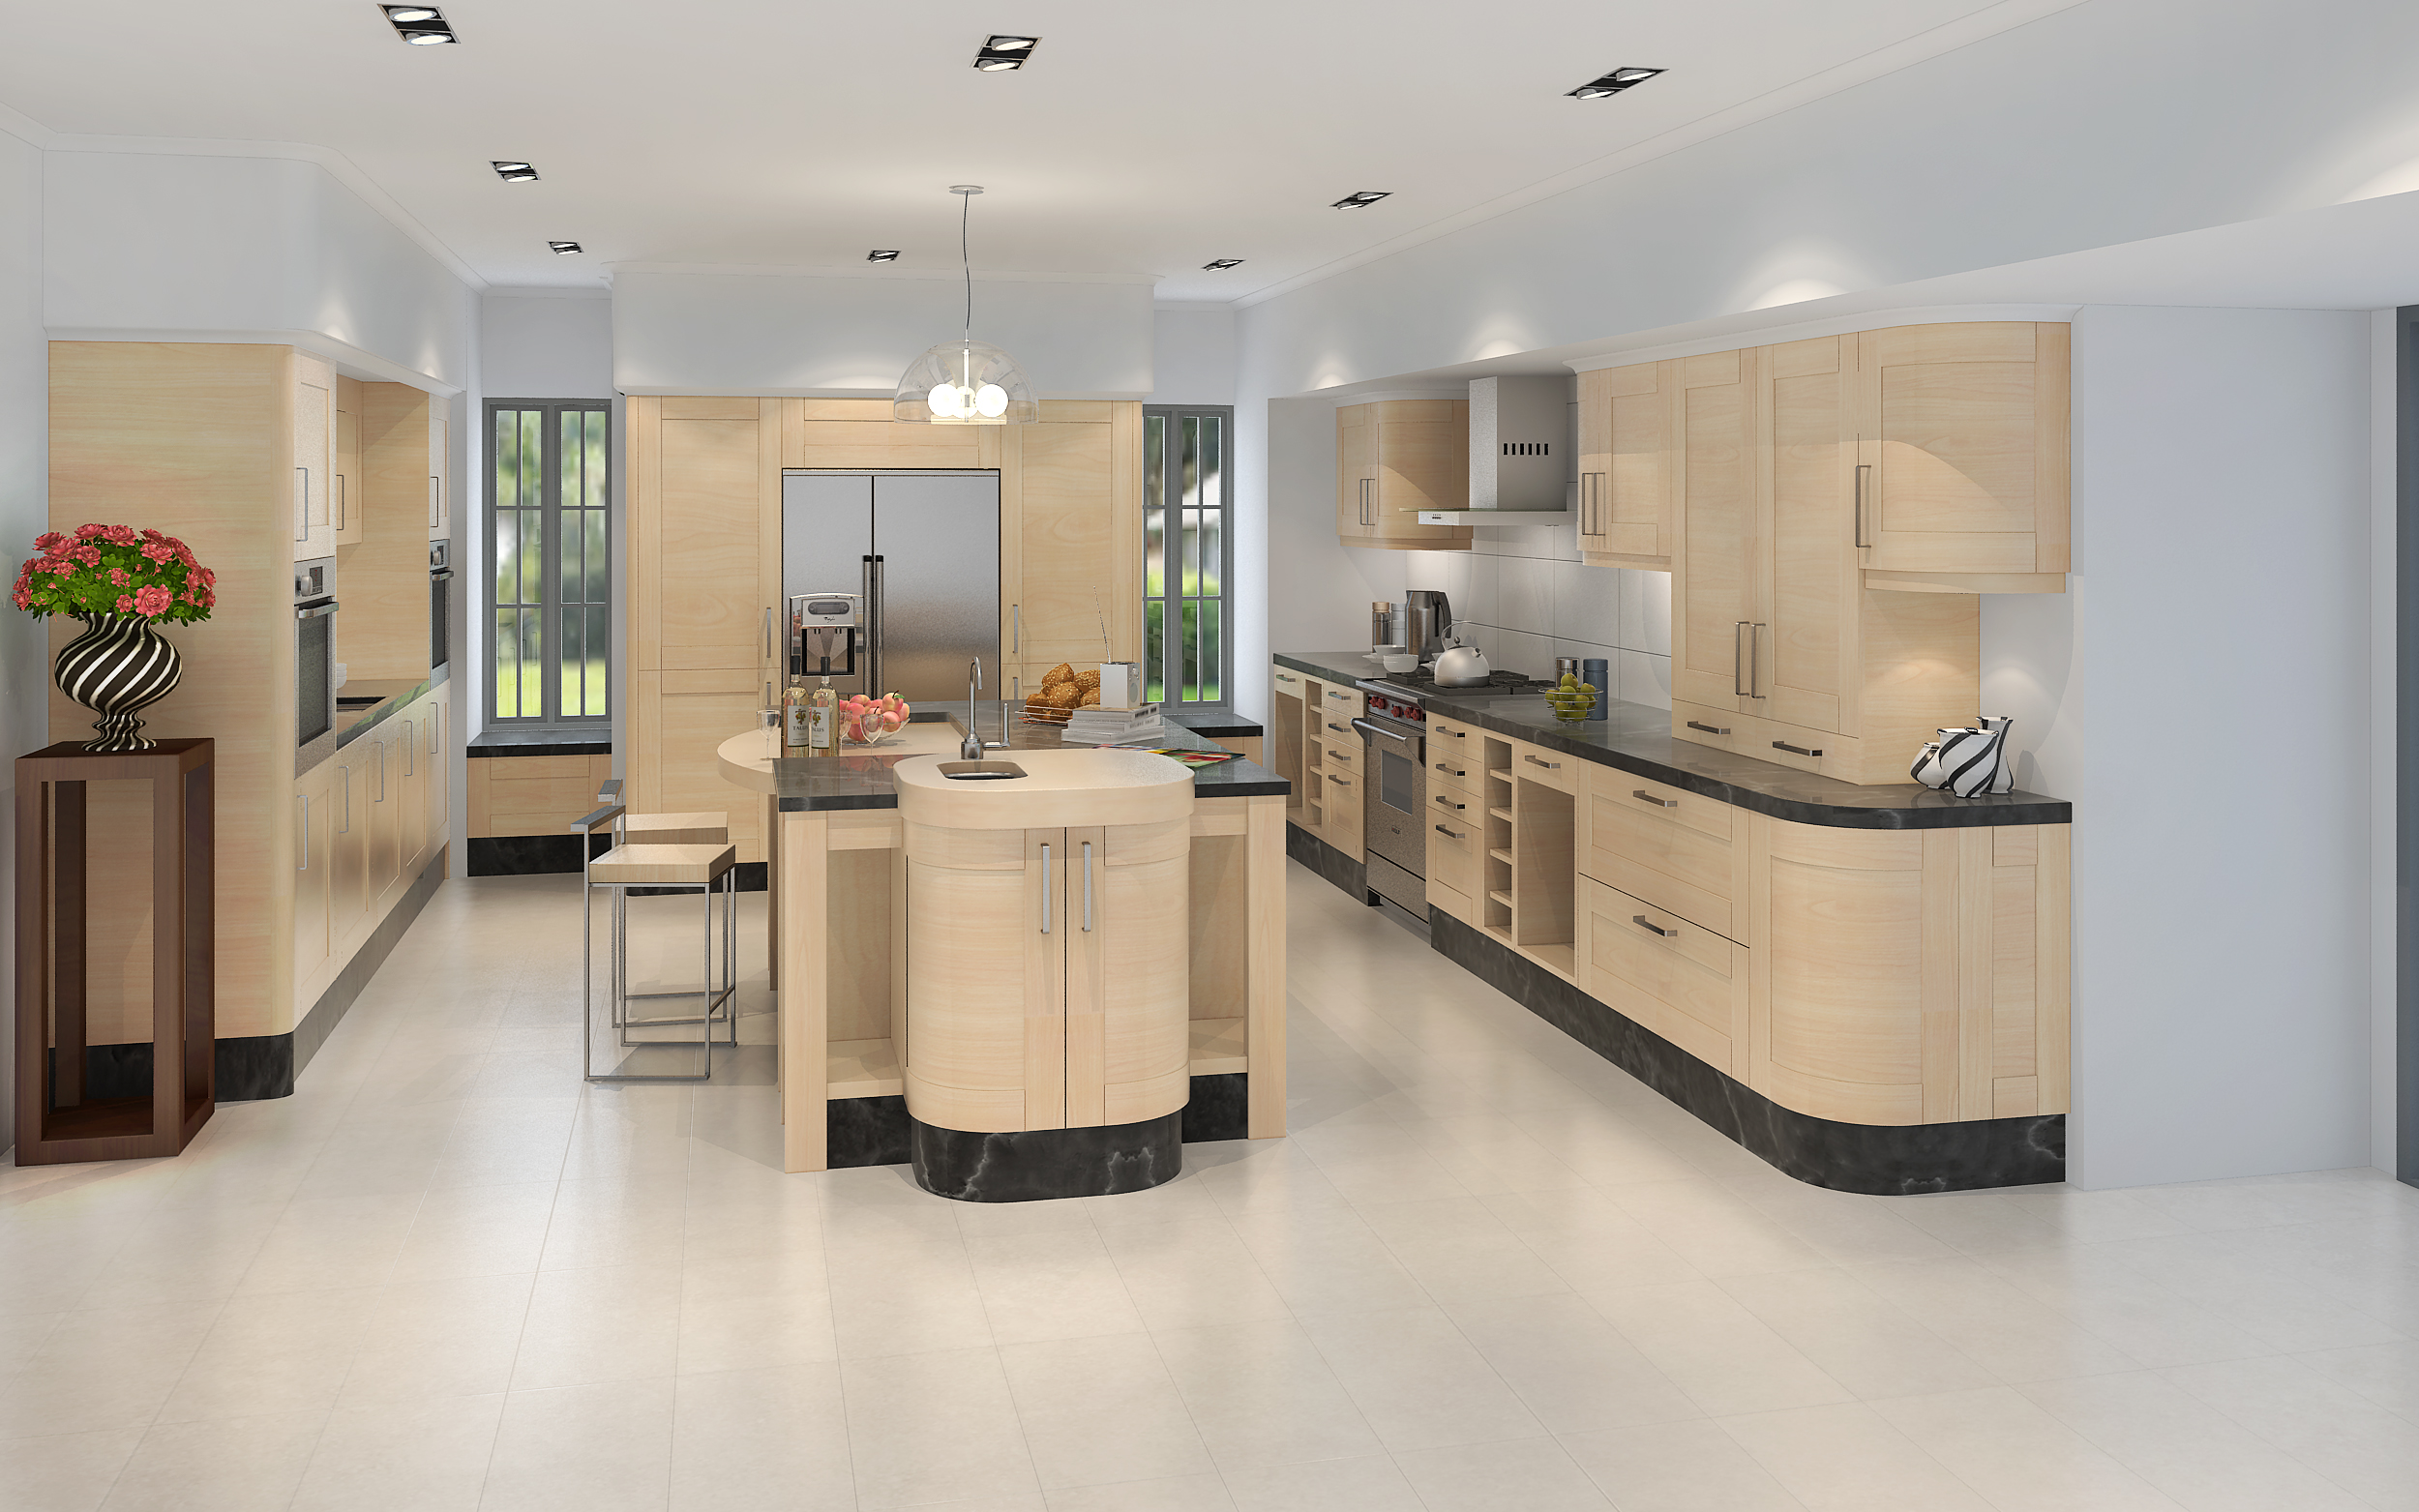 3D RENDERING KITCHEN 3D model